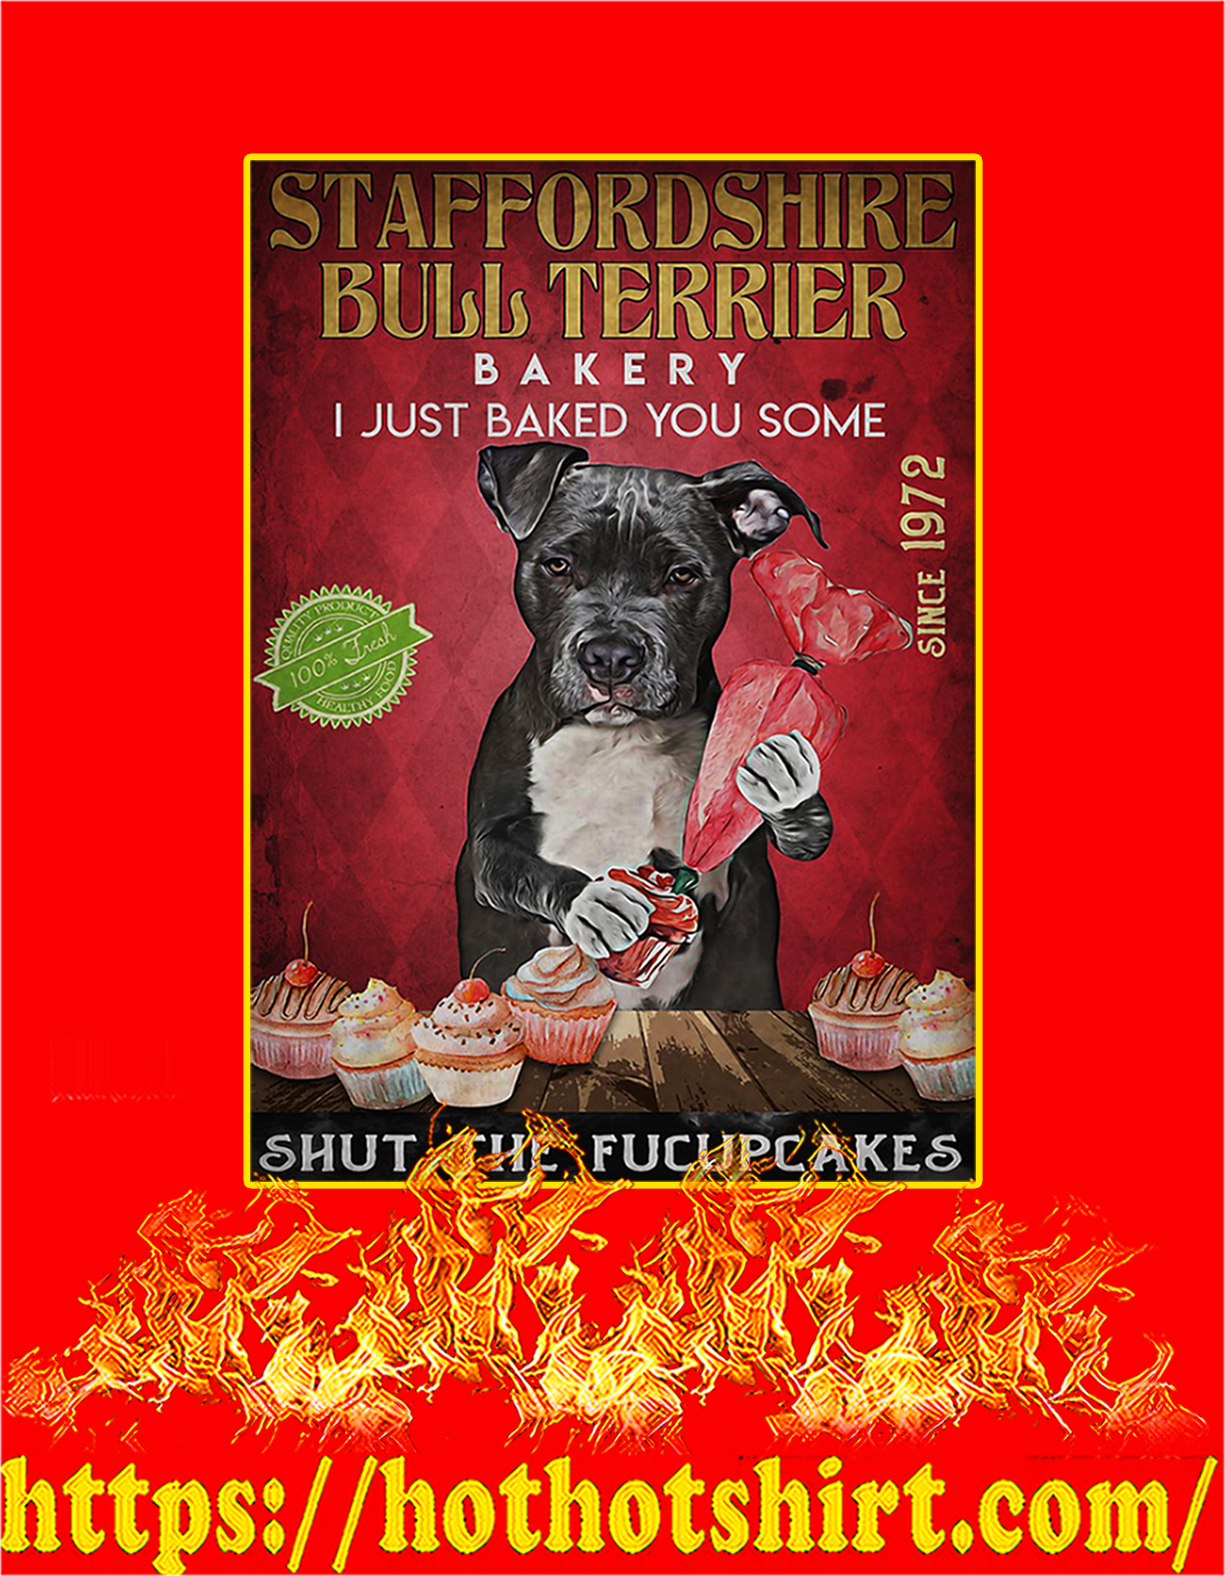 Staffordshire bull terrier bakery shut the fucupcakes poster - A4